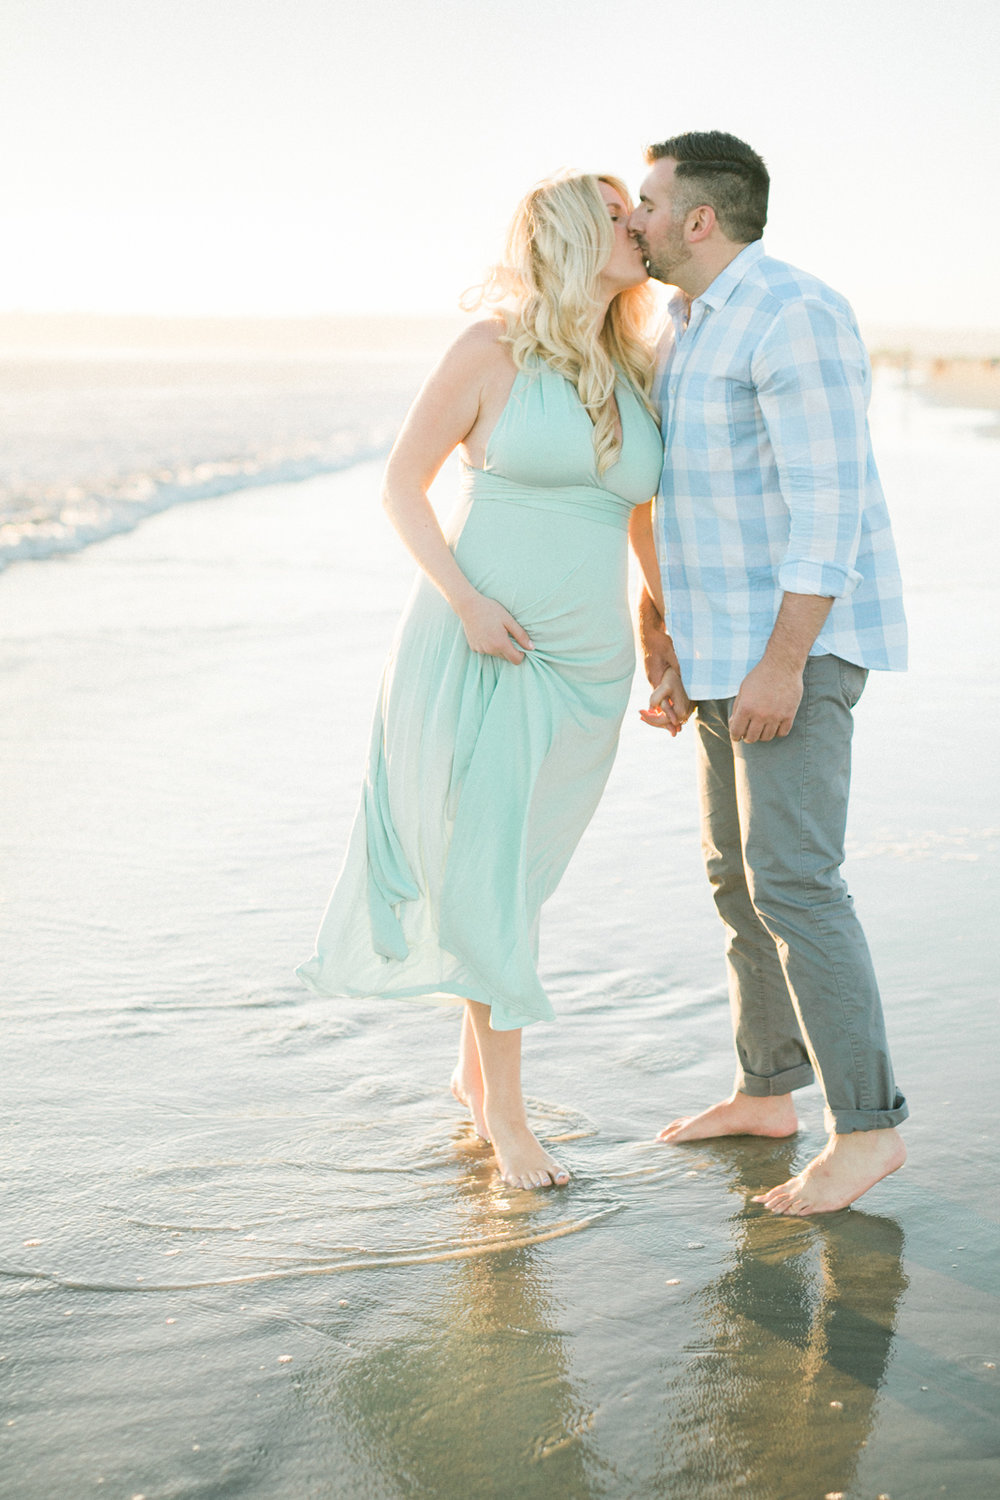 coronado-maternity-photos-10.jpg